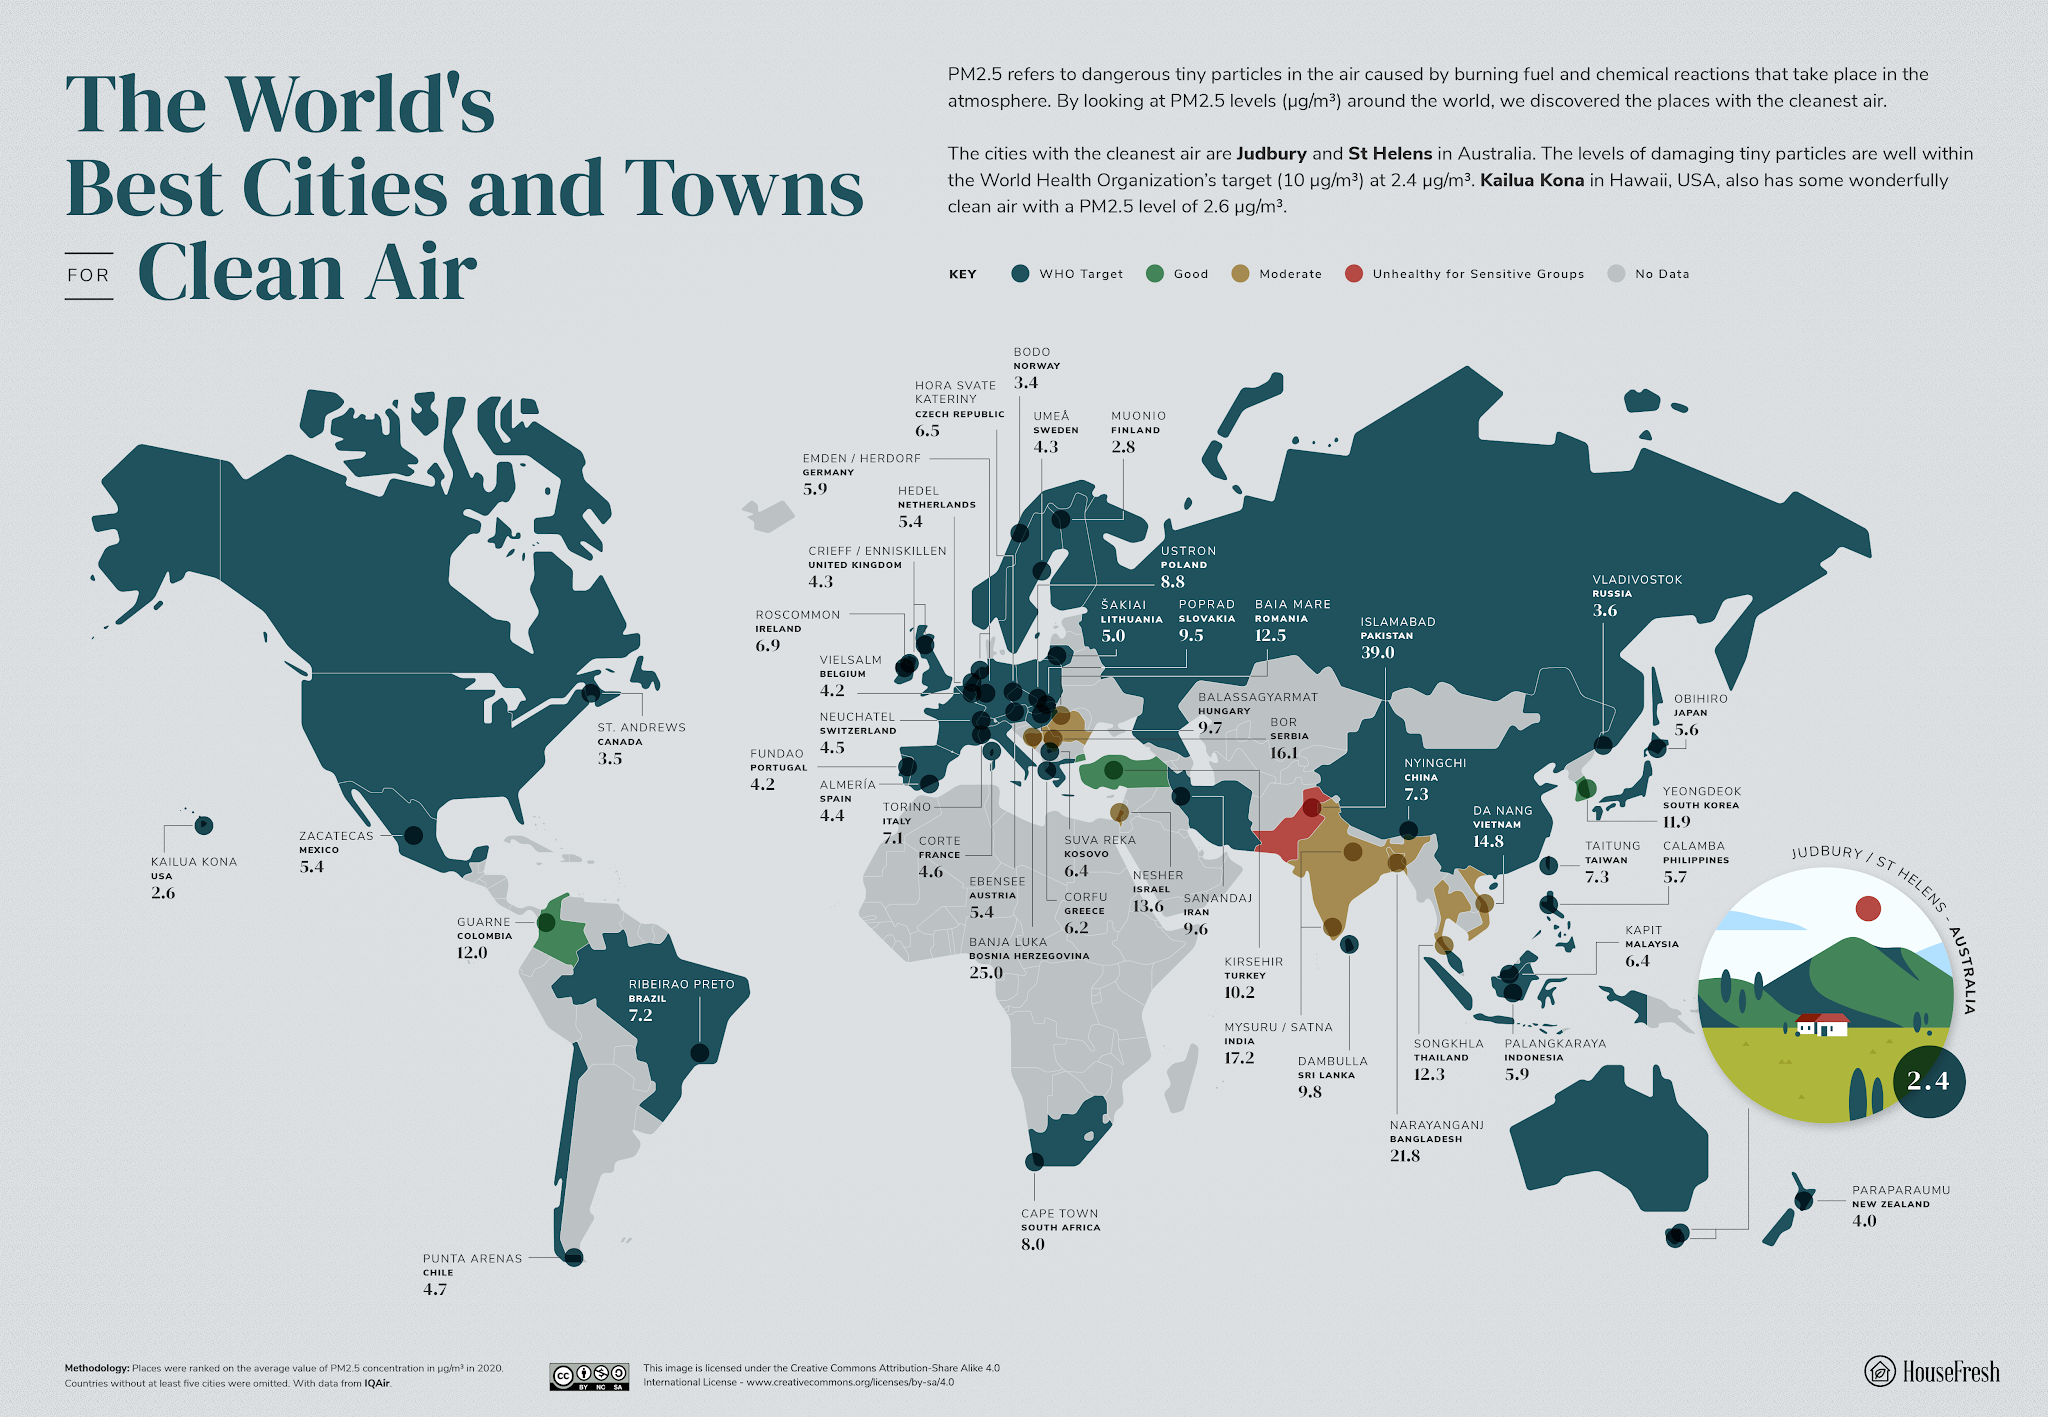 The best cities for clean air in the world